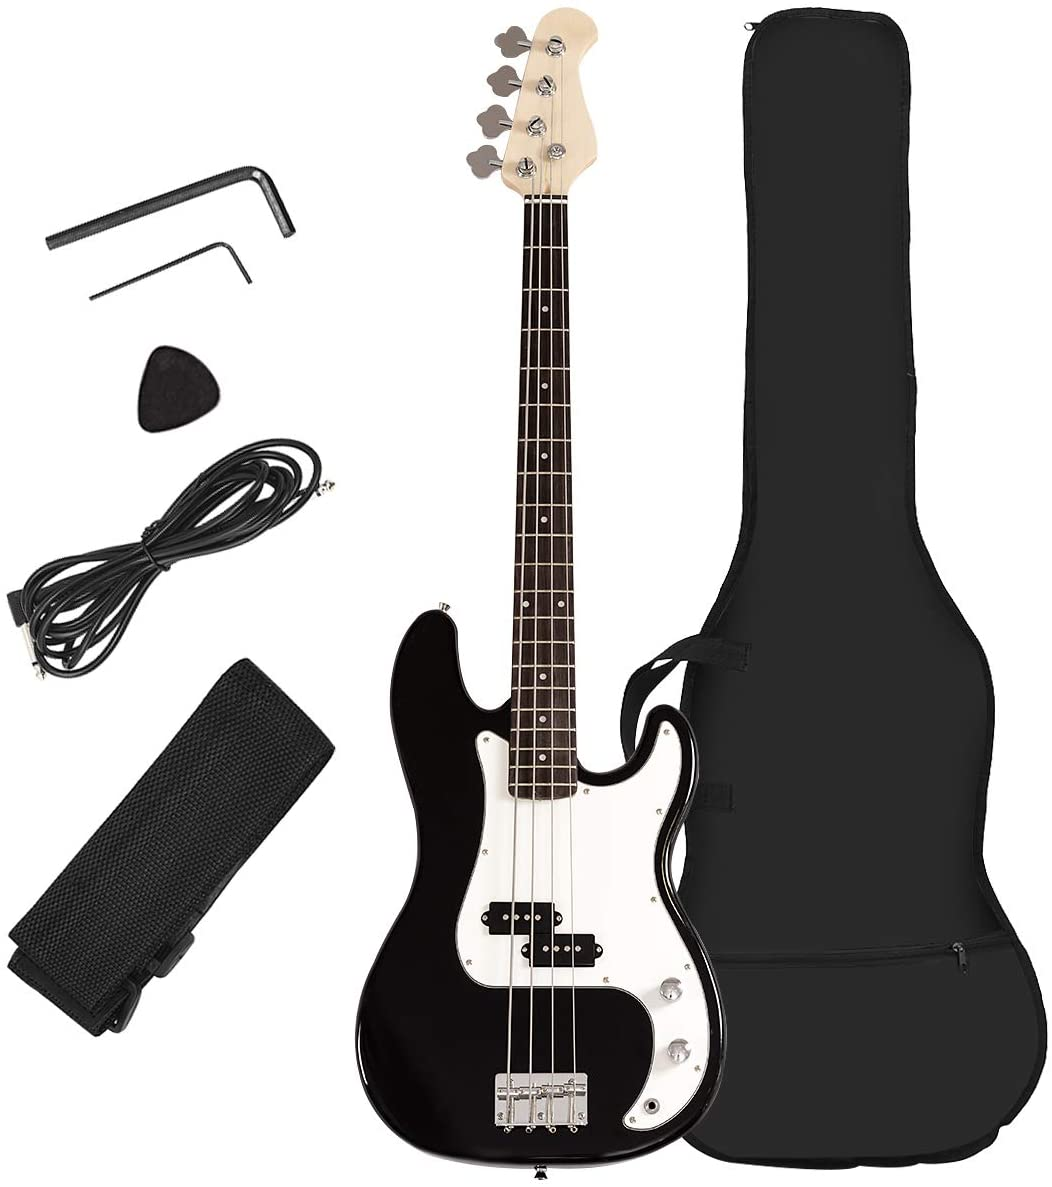 Costzon Max 89% OFF Full Size All stores are sold Electric 4 String Guitar Bass Sta Beginner for